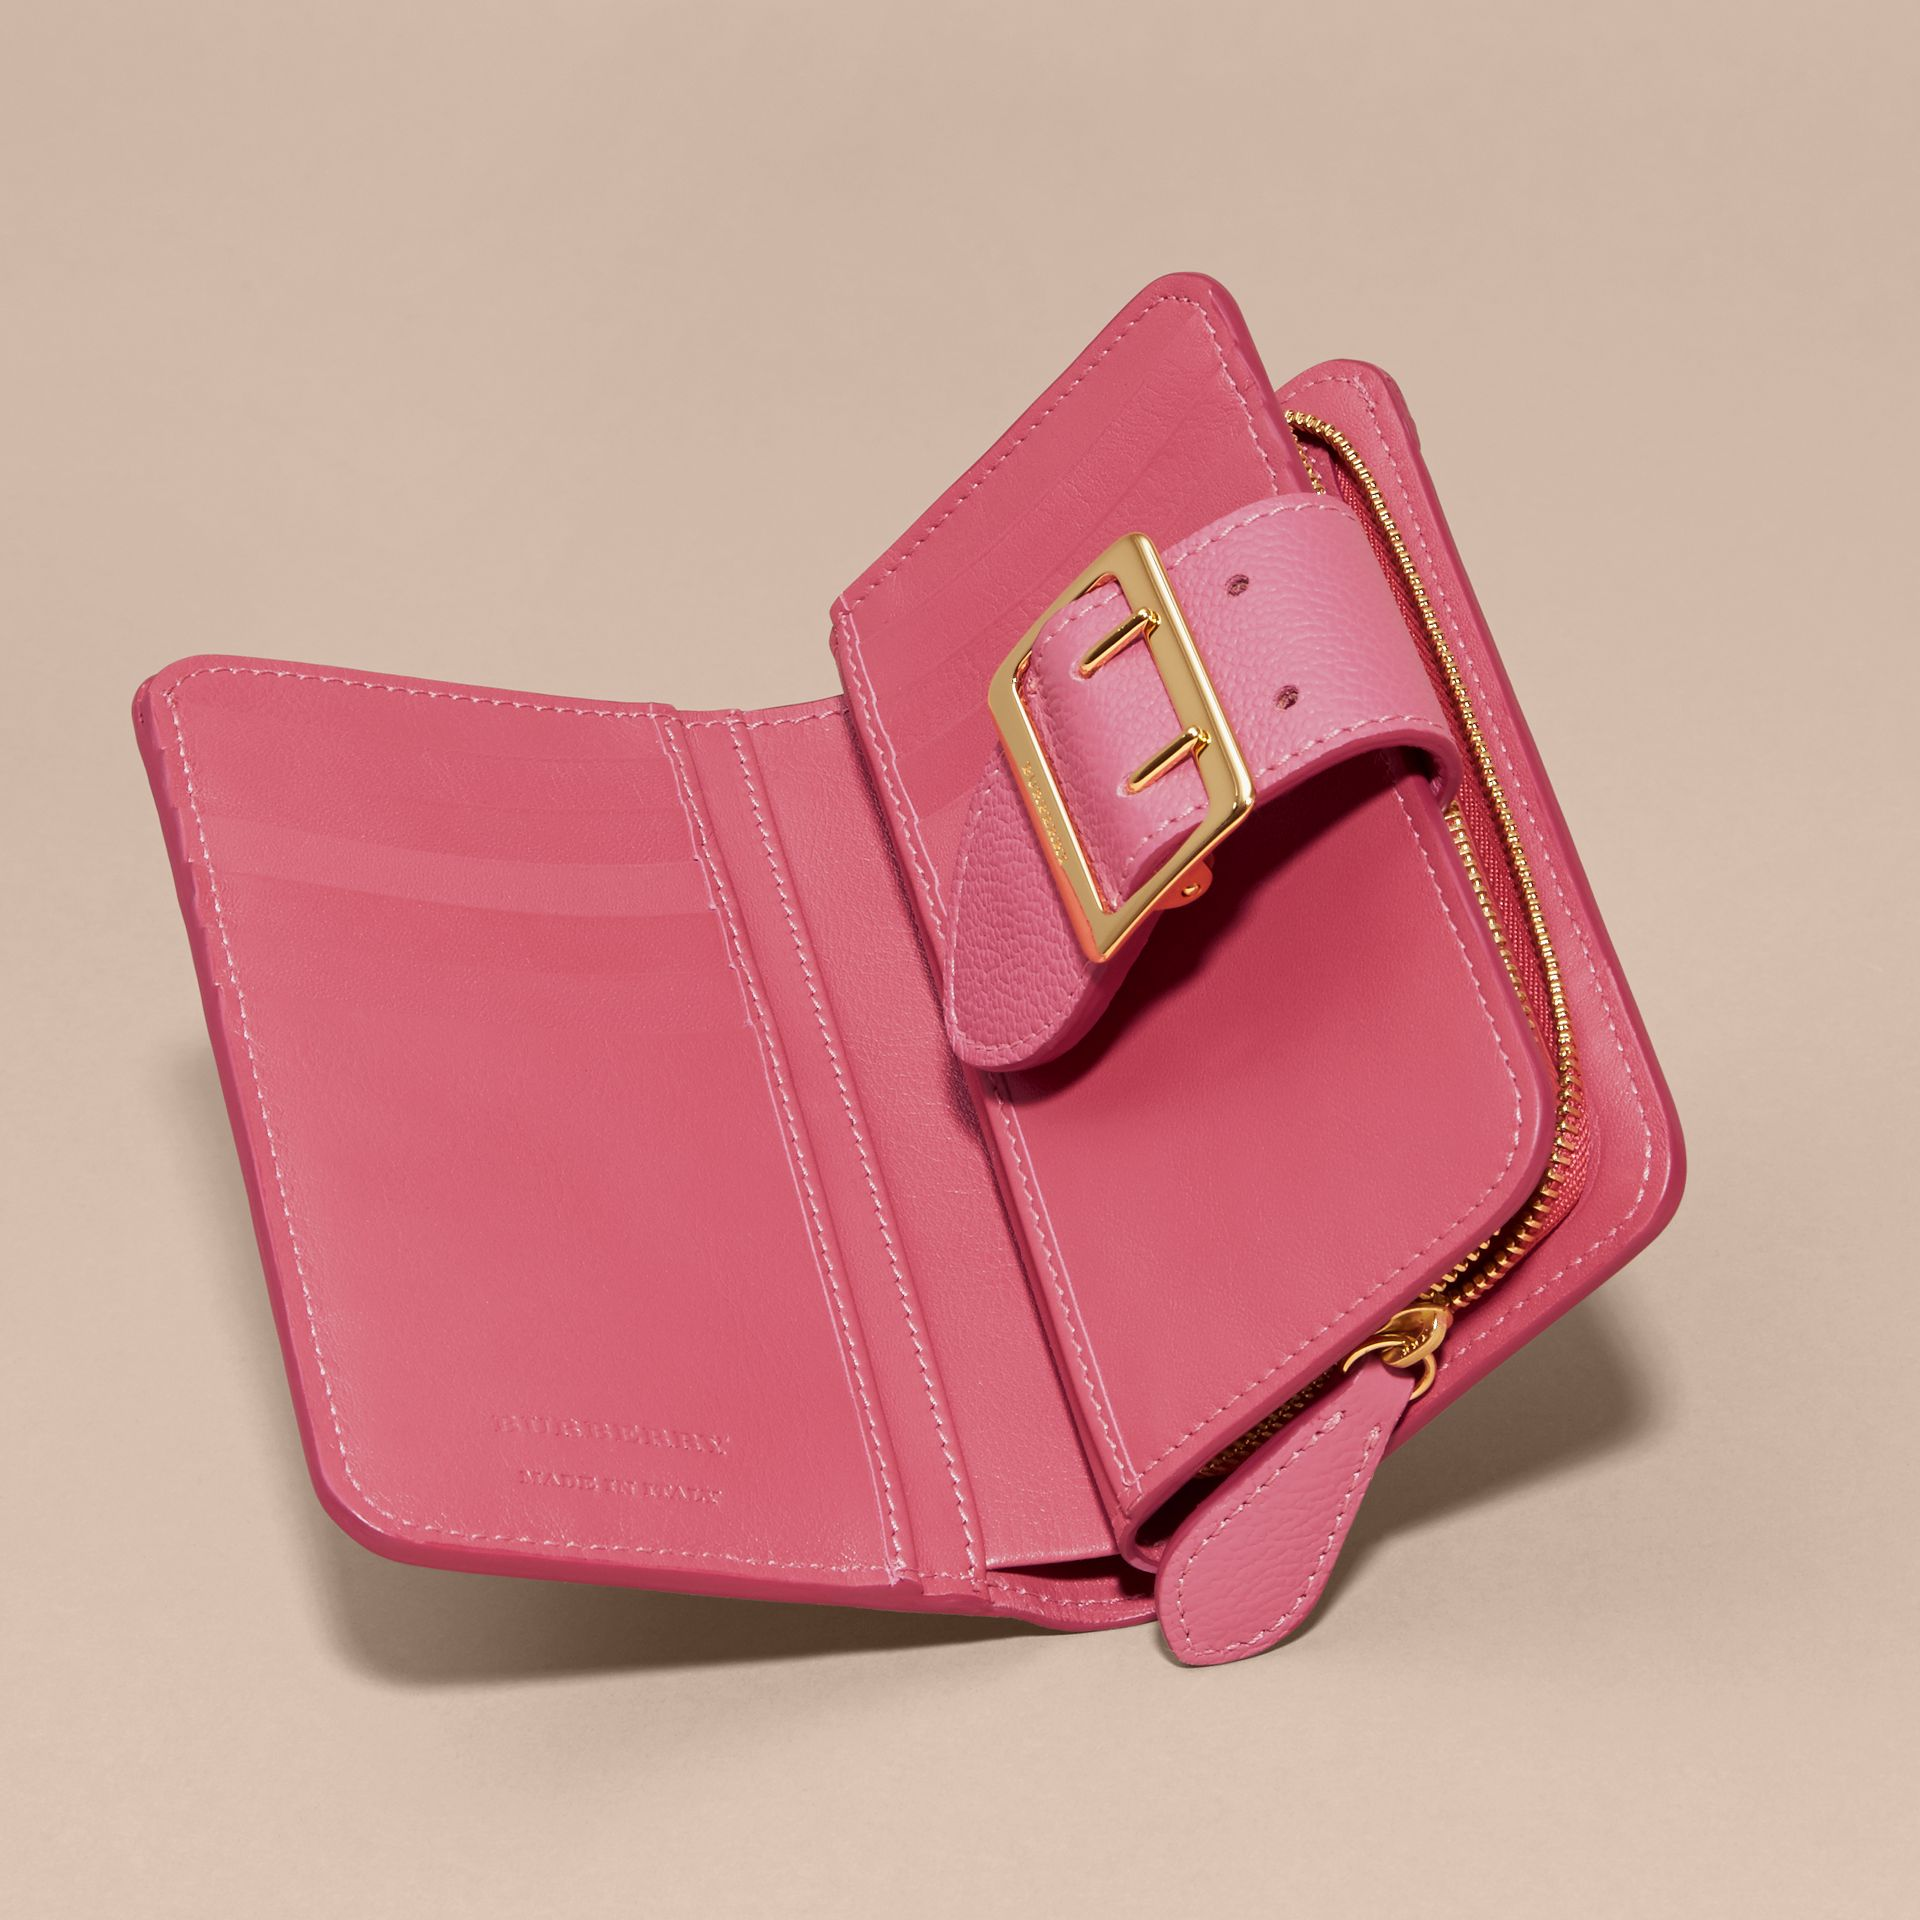 Pink azalea Buckle Detail Grainy Leather Wallet Pink Azalea - gallery image 5